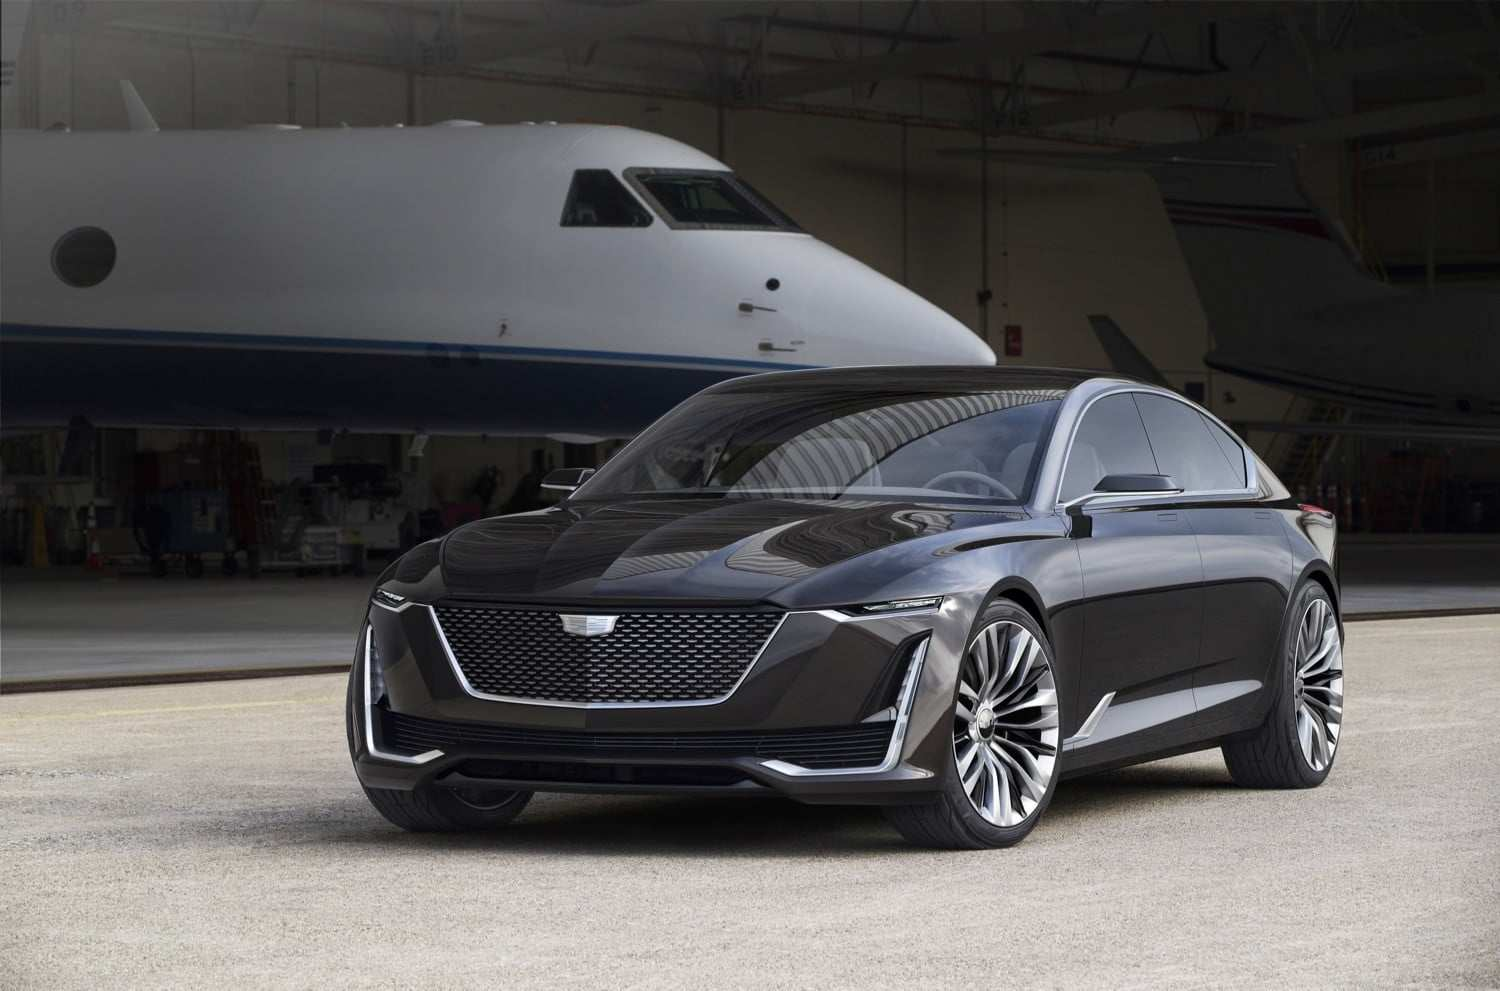 39 All New Cadillac Convertible 2020 Research New